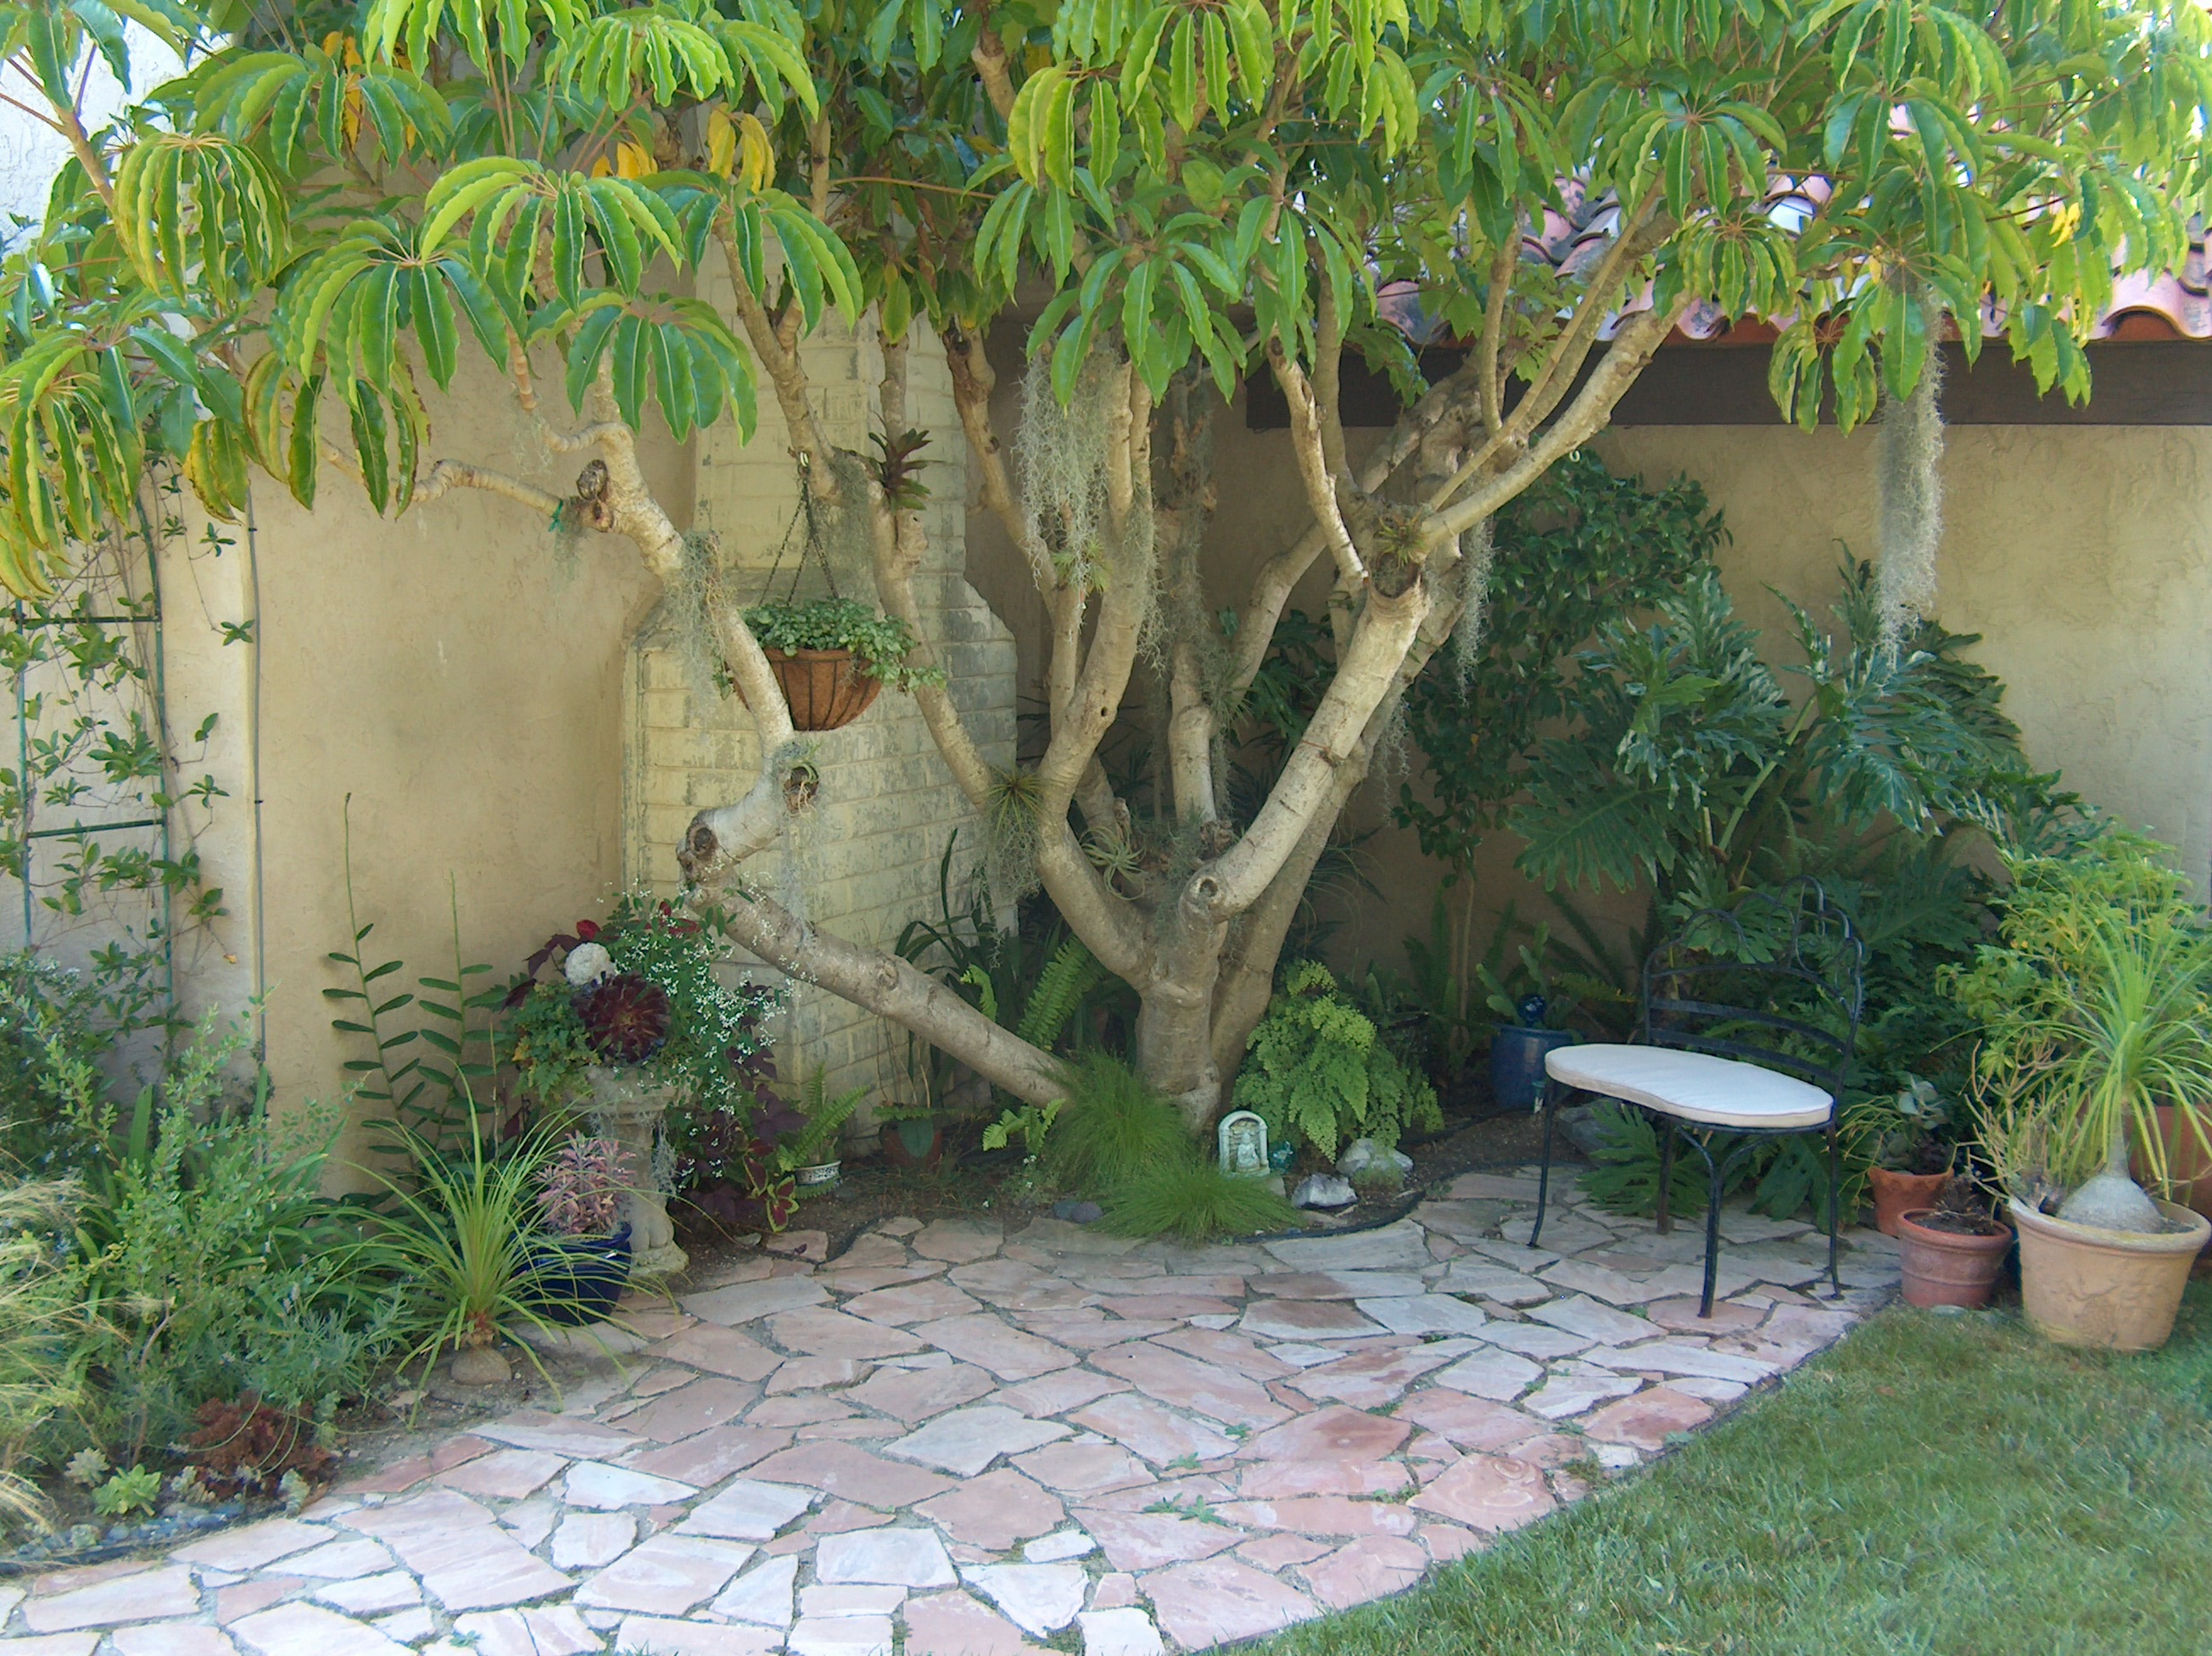 Meditation garden gailsserenity blog for Meditation garden designs